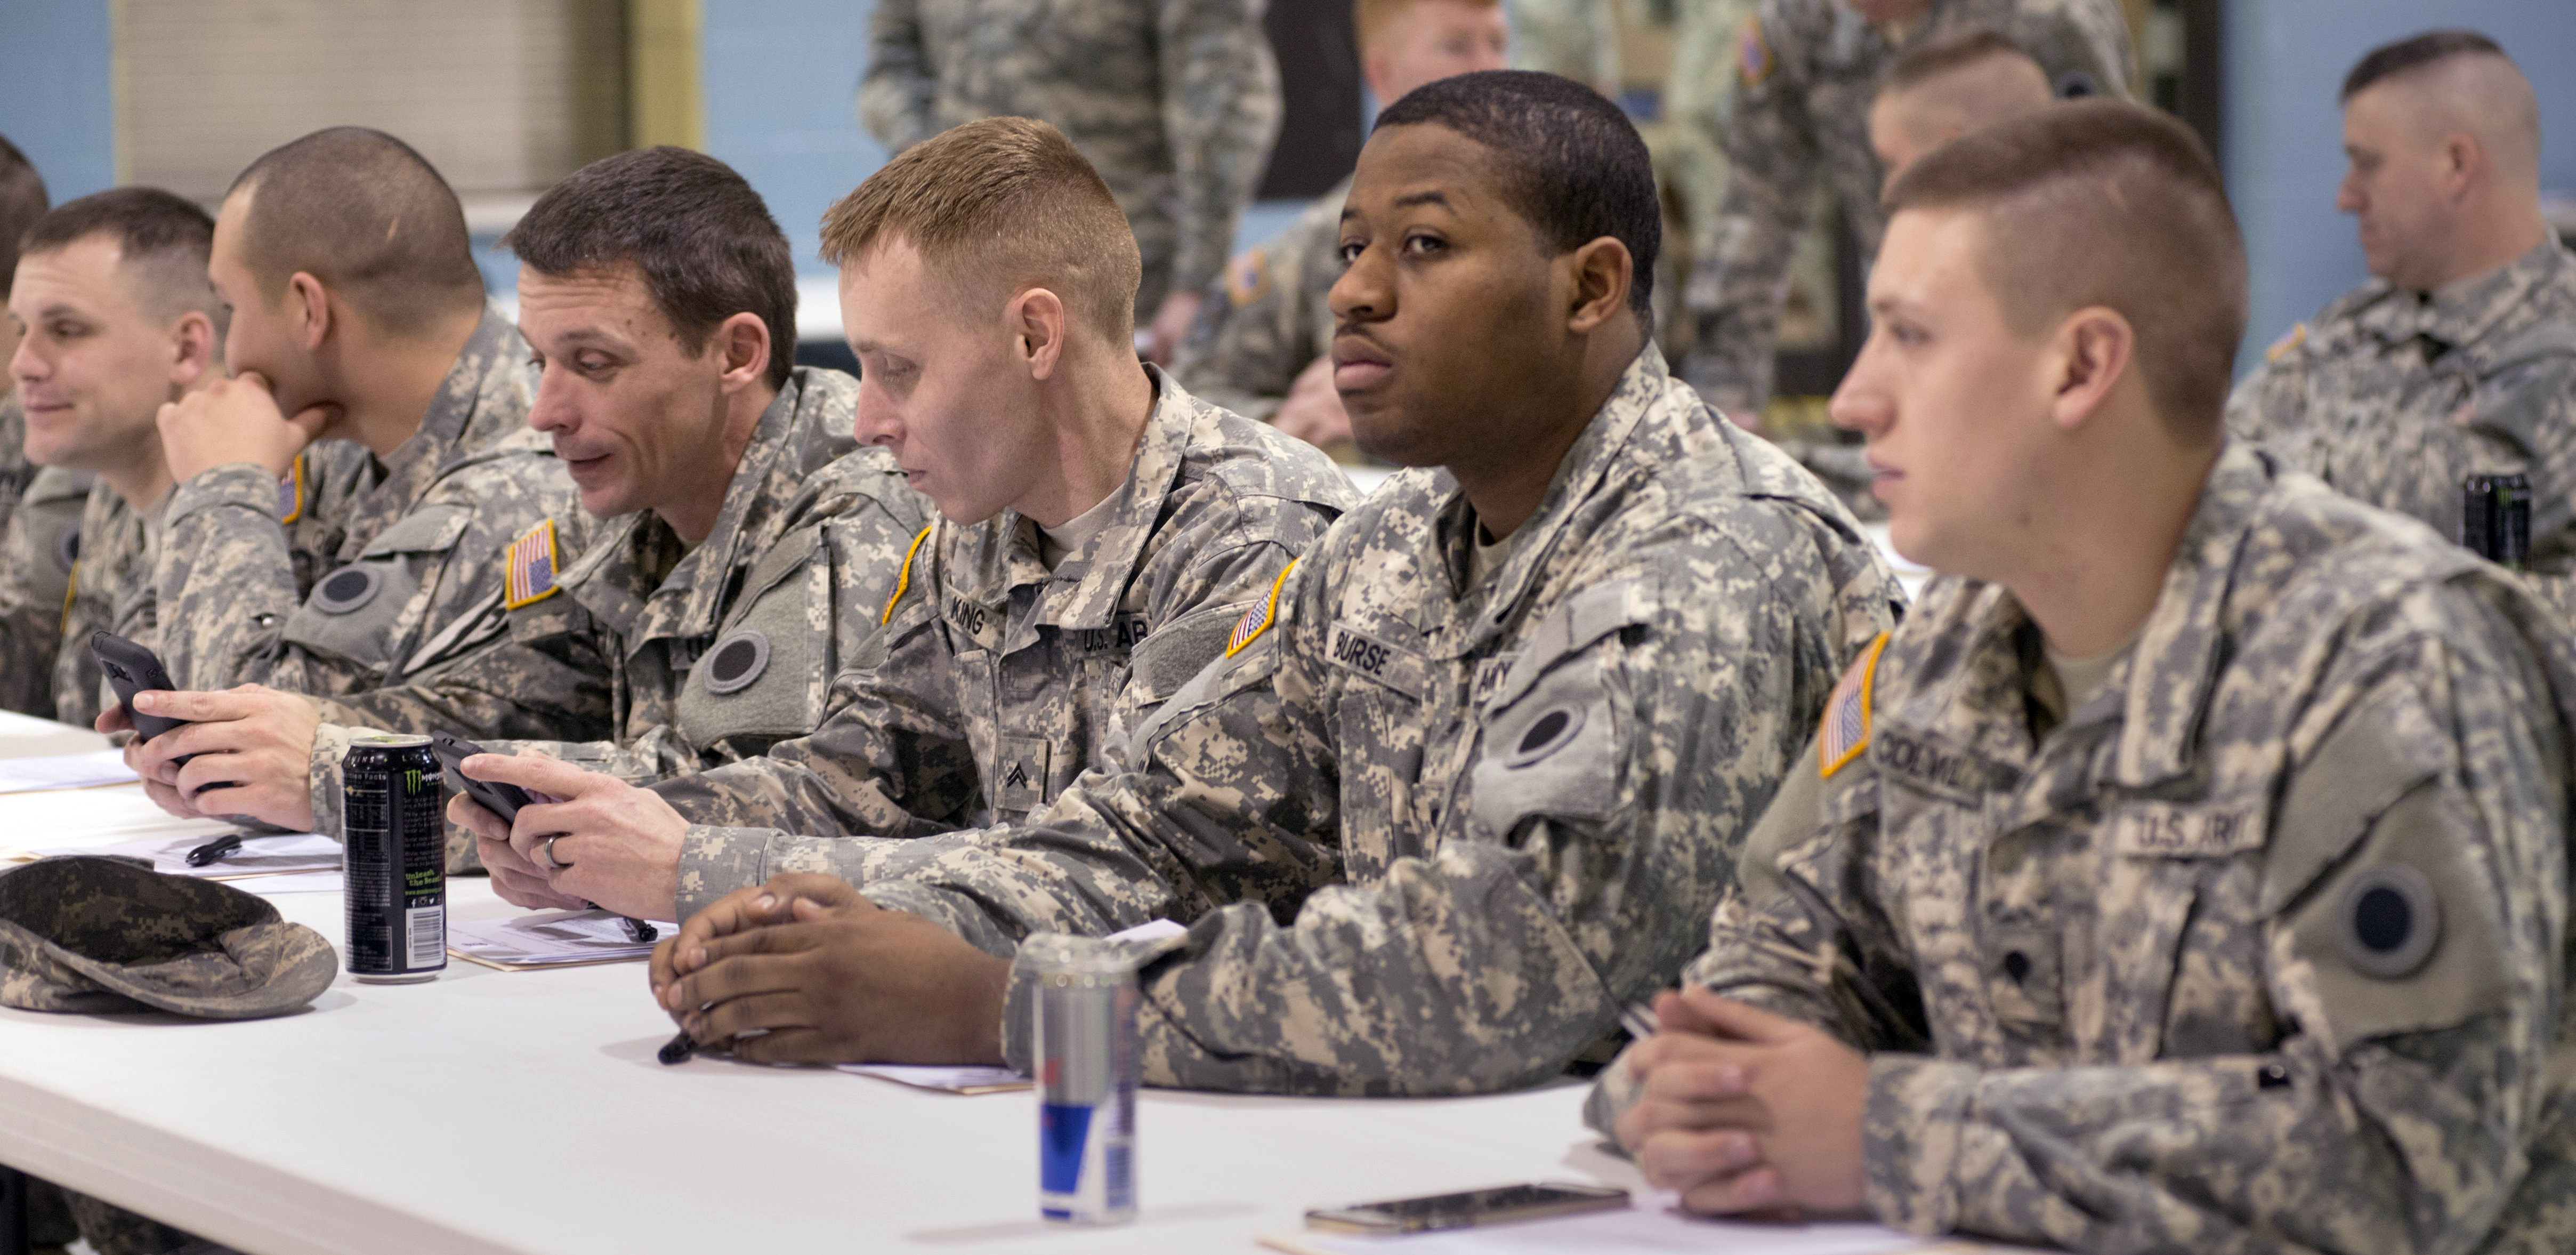 Army National Guard deployed to help with Flint Water Crisis